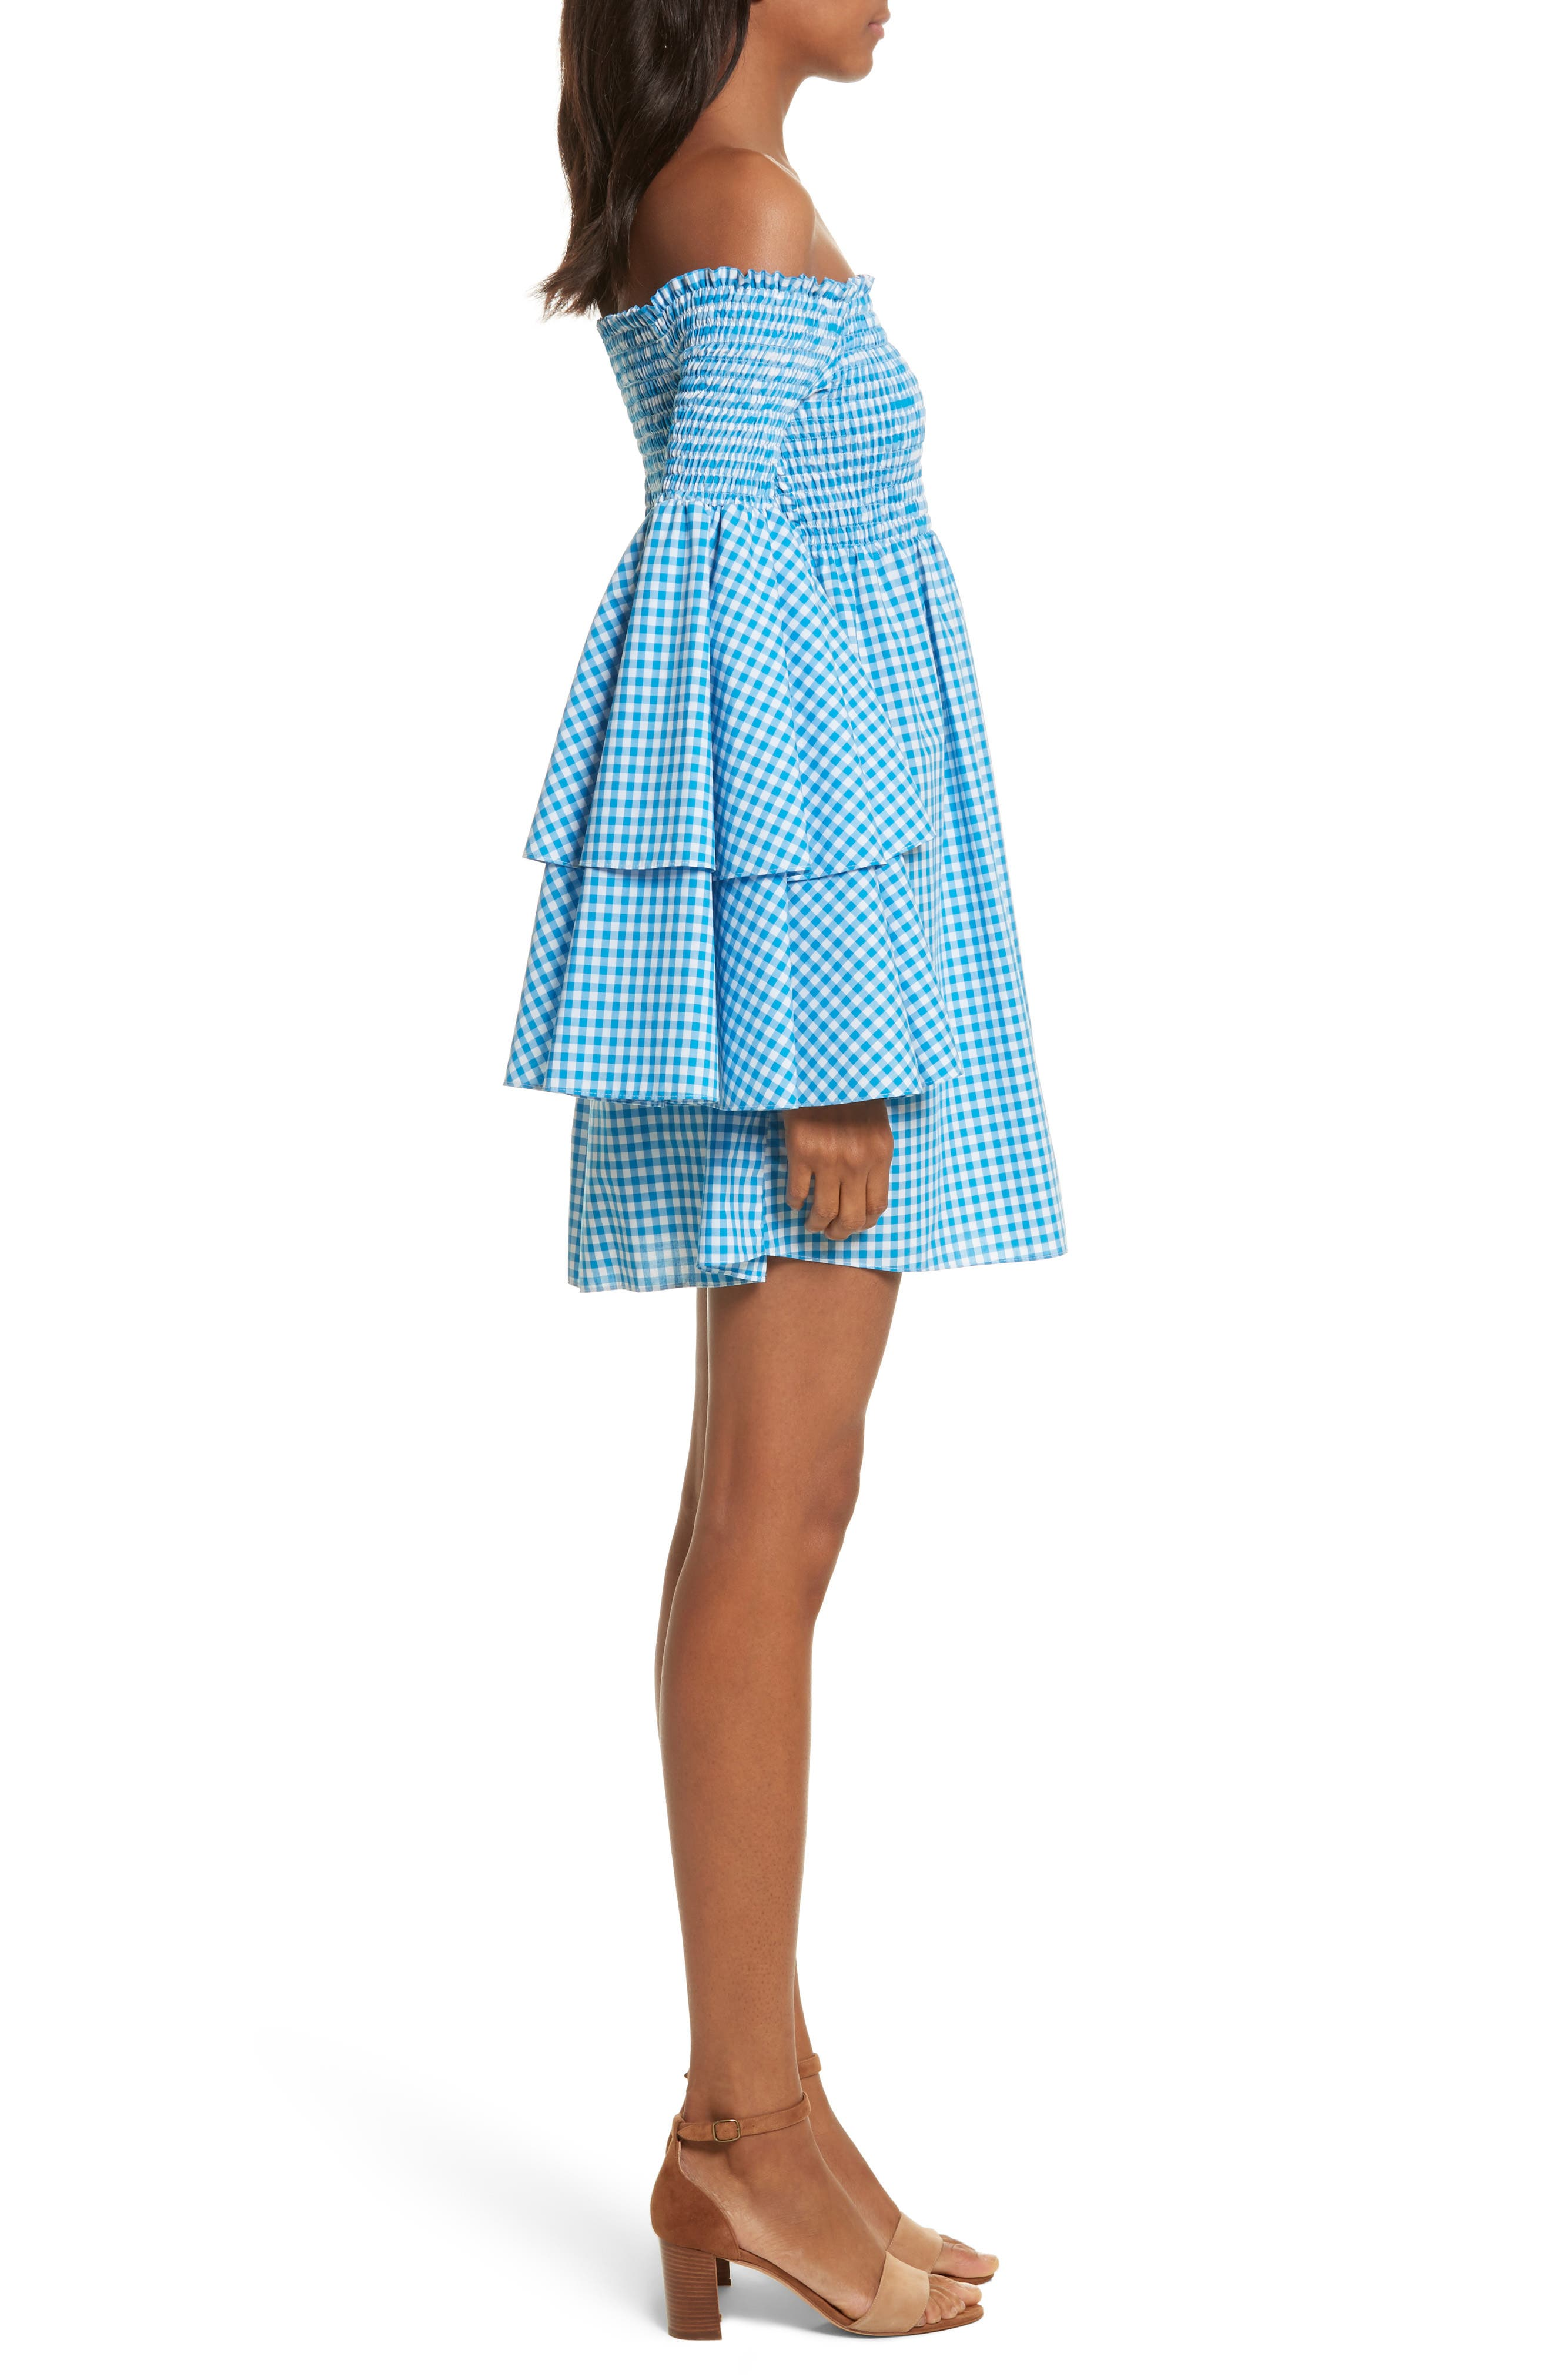 Appolonia Gingham Off the Shoulder Dress,                             Alternate thumbnail 3, color,                             Turquoise